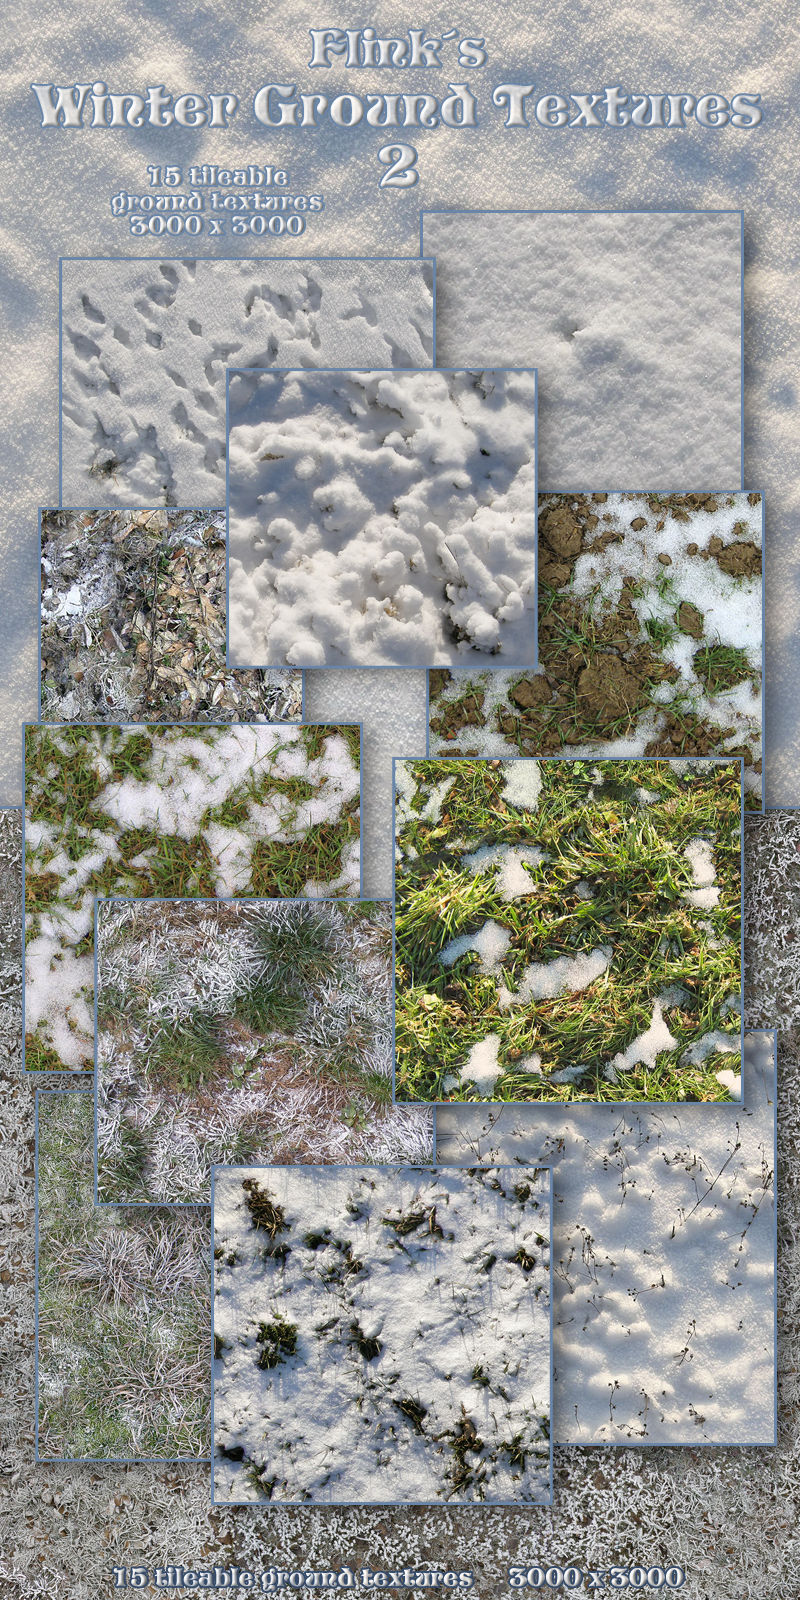 Flinks Winter Ground Textures 2